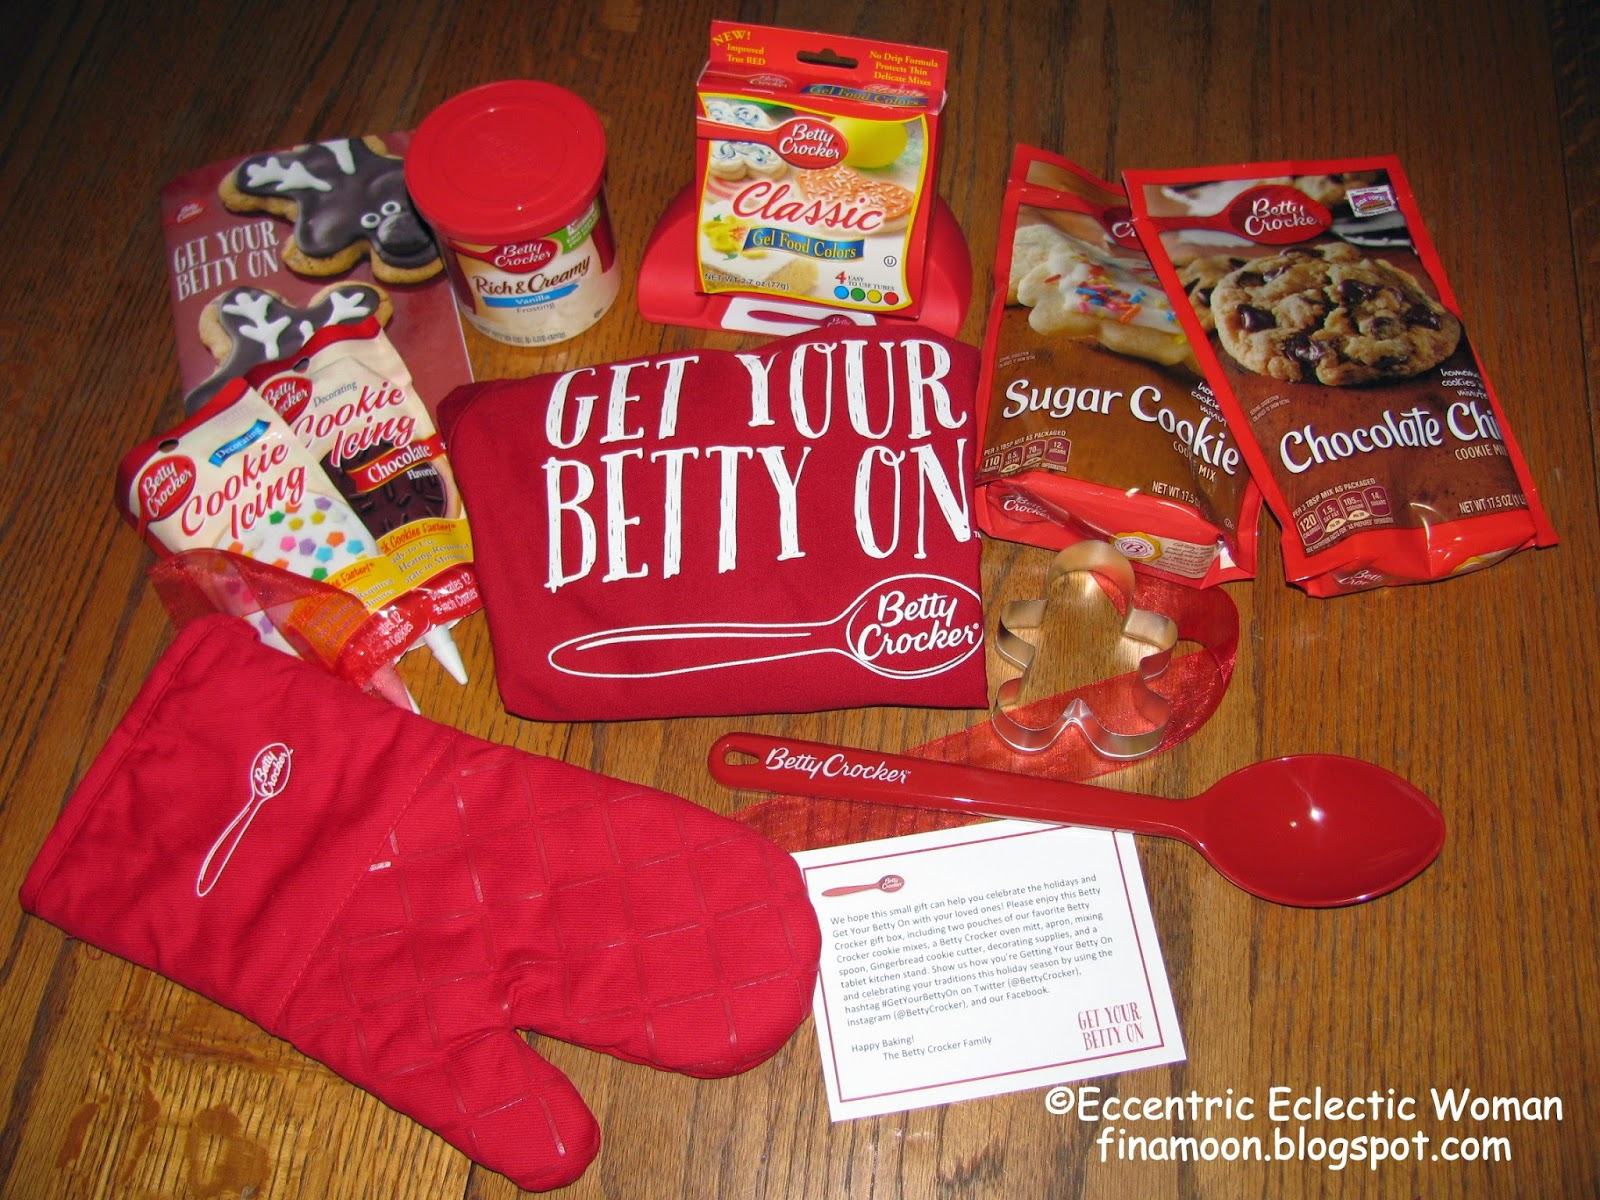 Betty Crockers Holiday Baking Pdf Books With Free Ebook Downloads